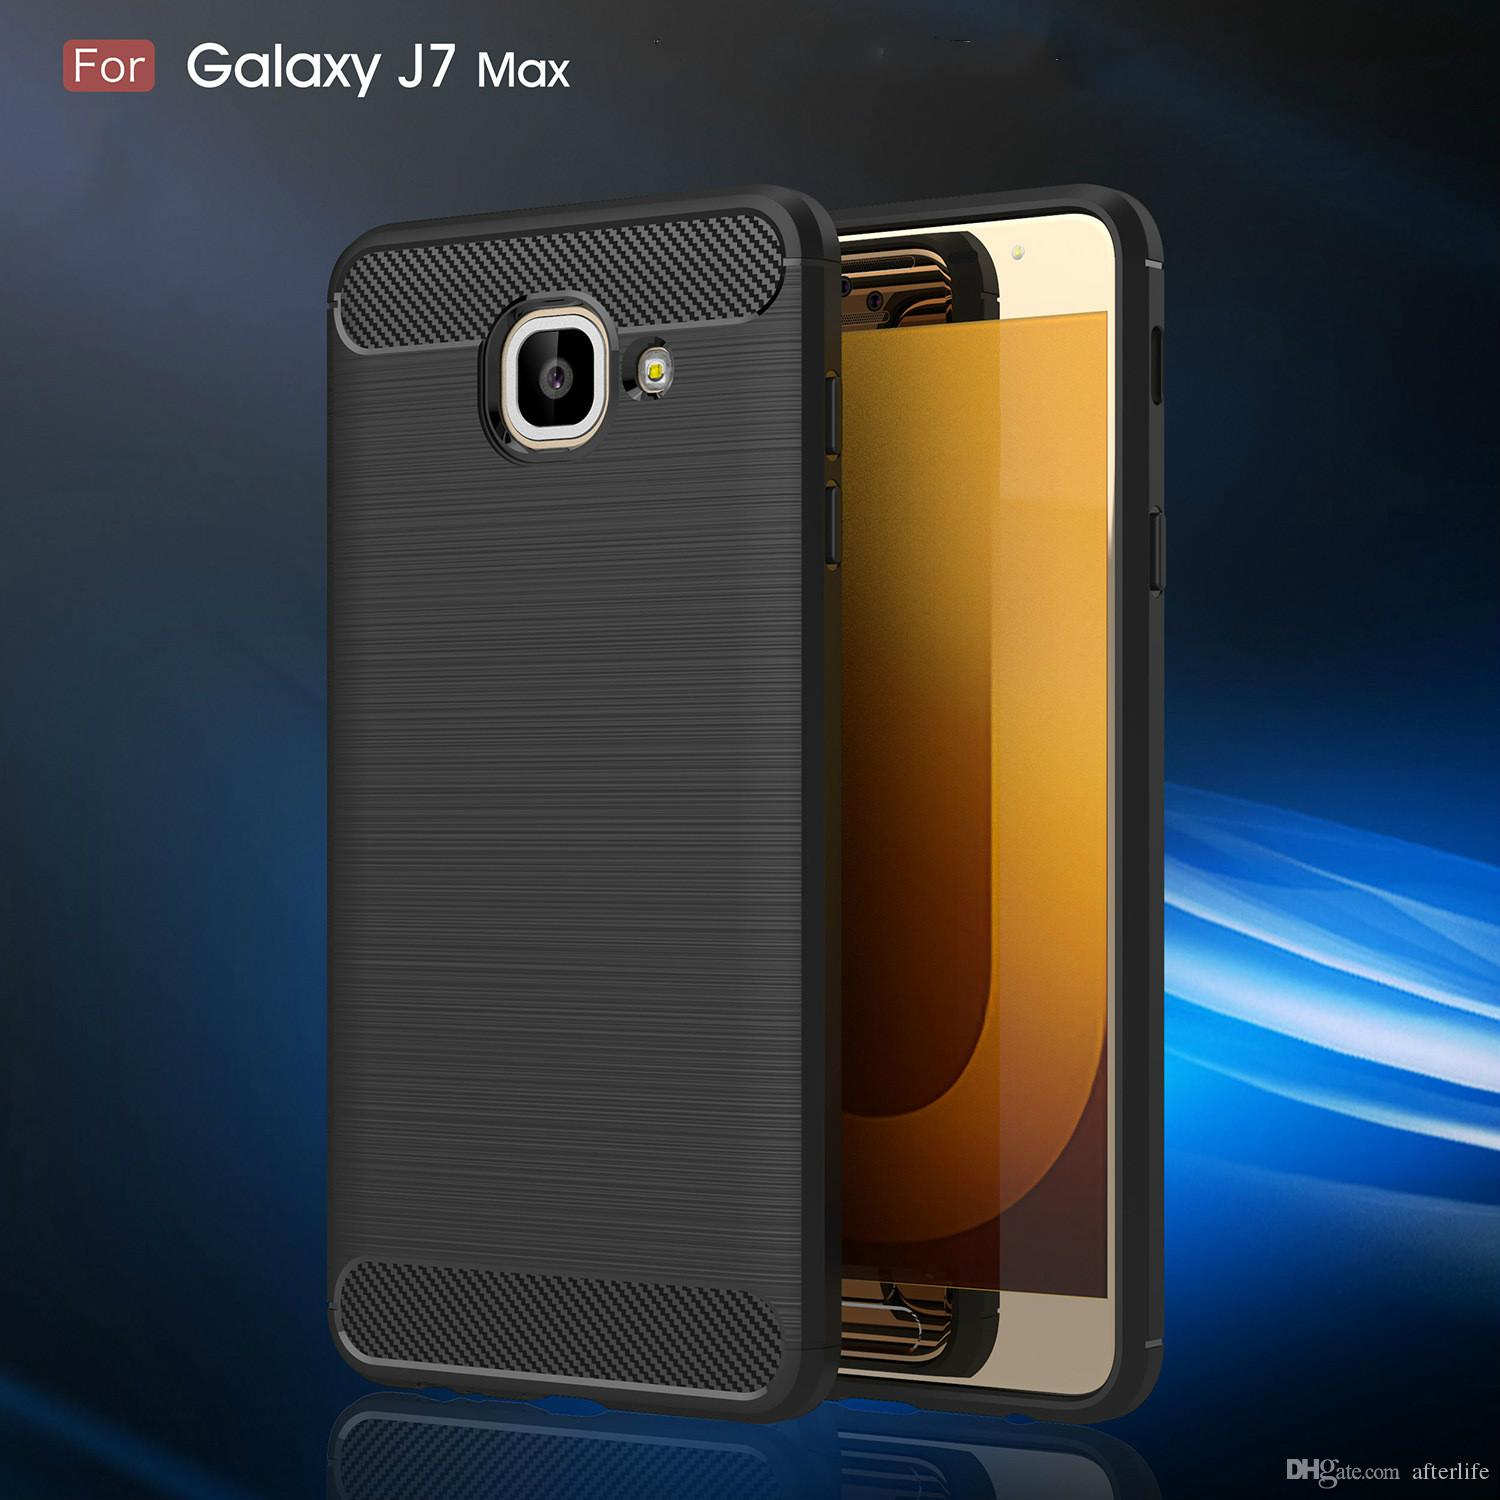 reputable site e4c90 29311 Fashion Luxury Phone Case For Samsung J7 Max Case Silicon TPU Coque Hard  Soft Tpu Anti Knock Back Cover For Samsung Galaxy J7 Max Unique Cell Phone  ...